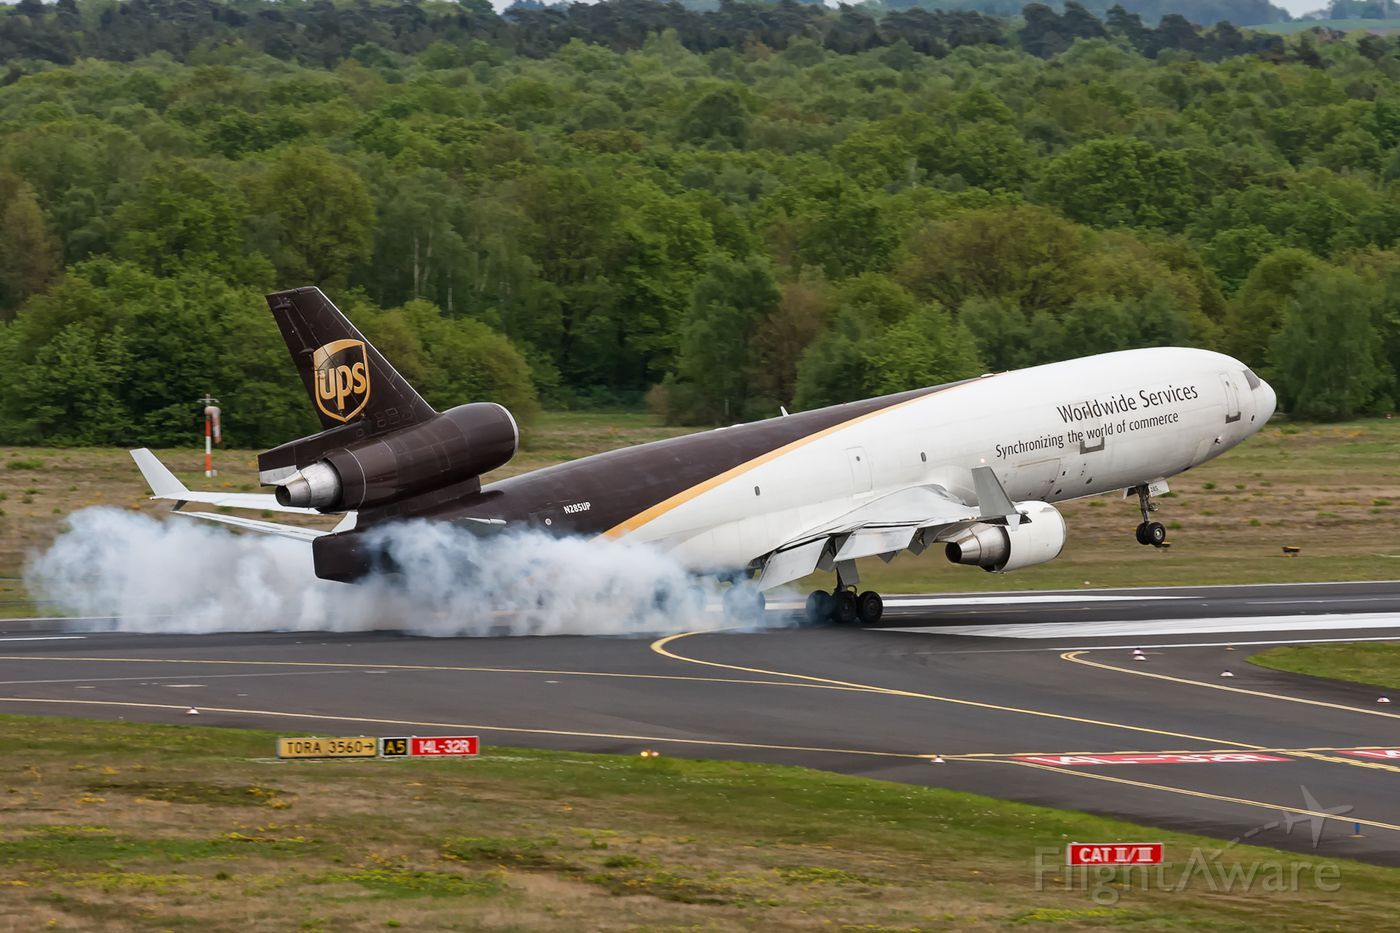 Photo of UPS McDonnell Douglas MD11 (N285UP) FlightAware